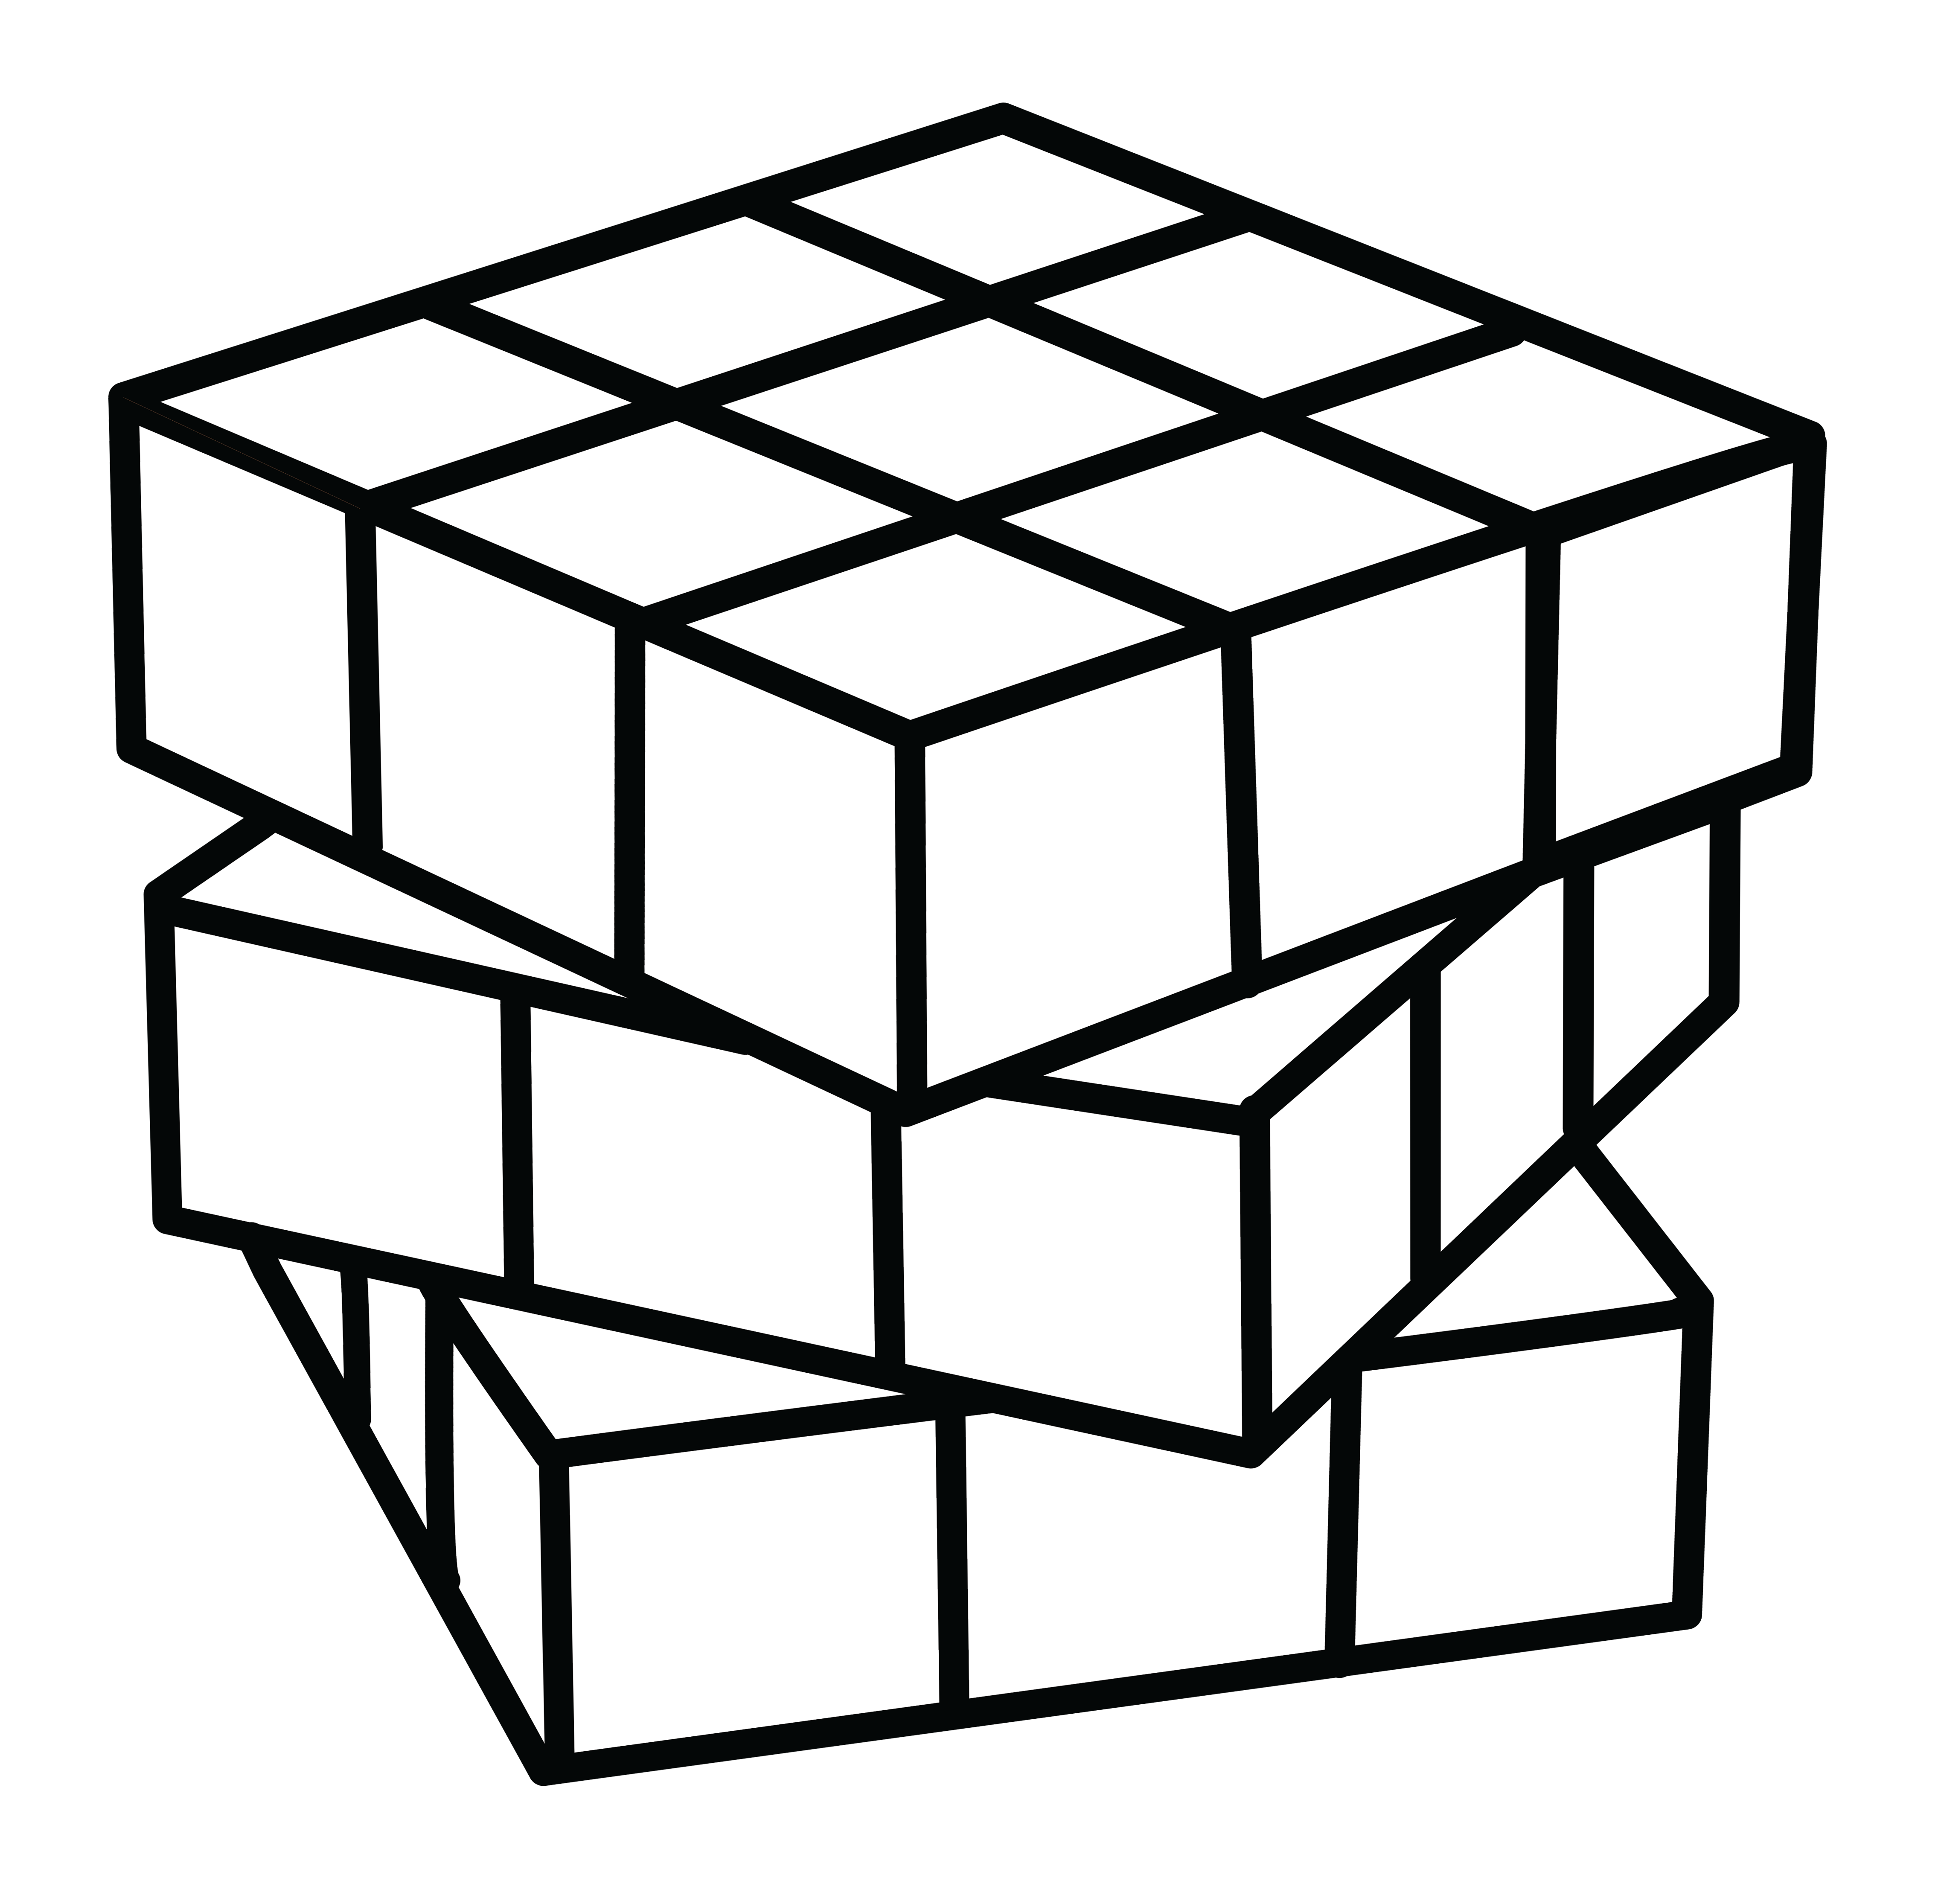 Cube clipart rubik's cube Cube Page Clip Rubiks Page